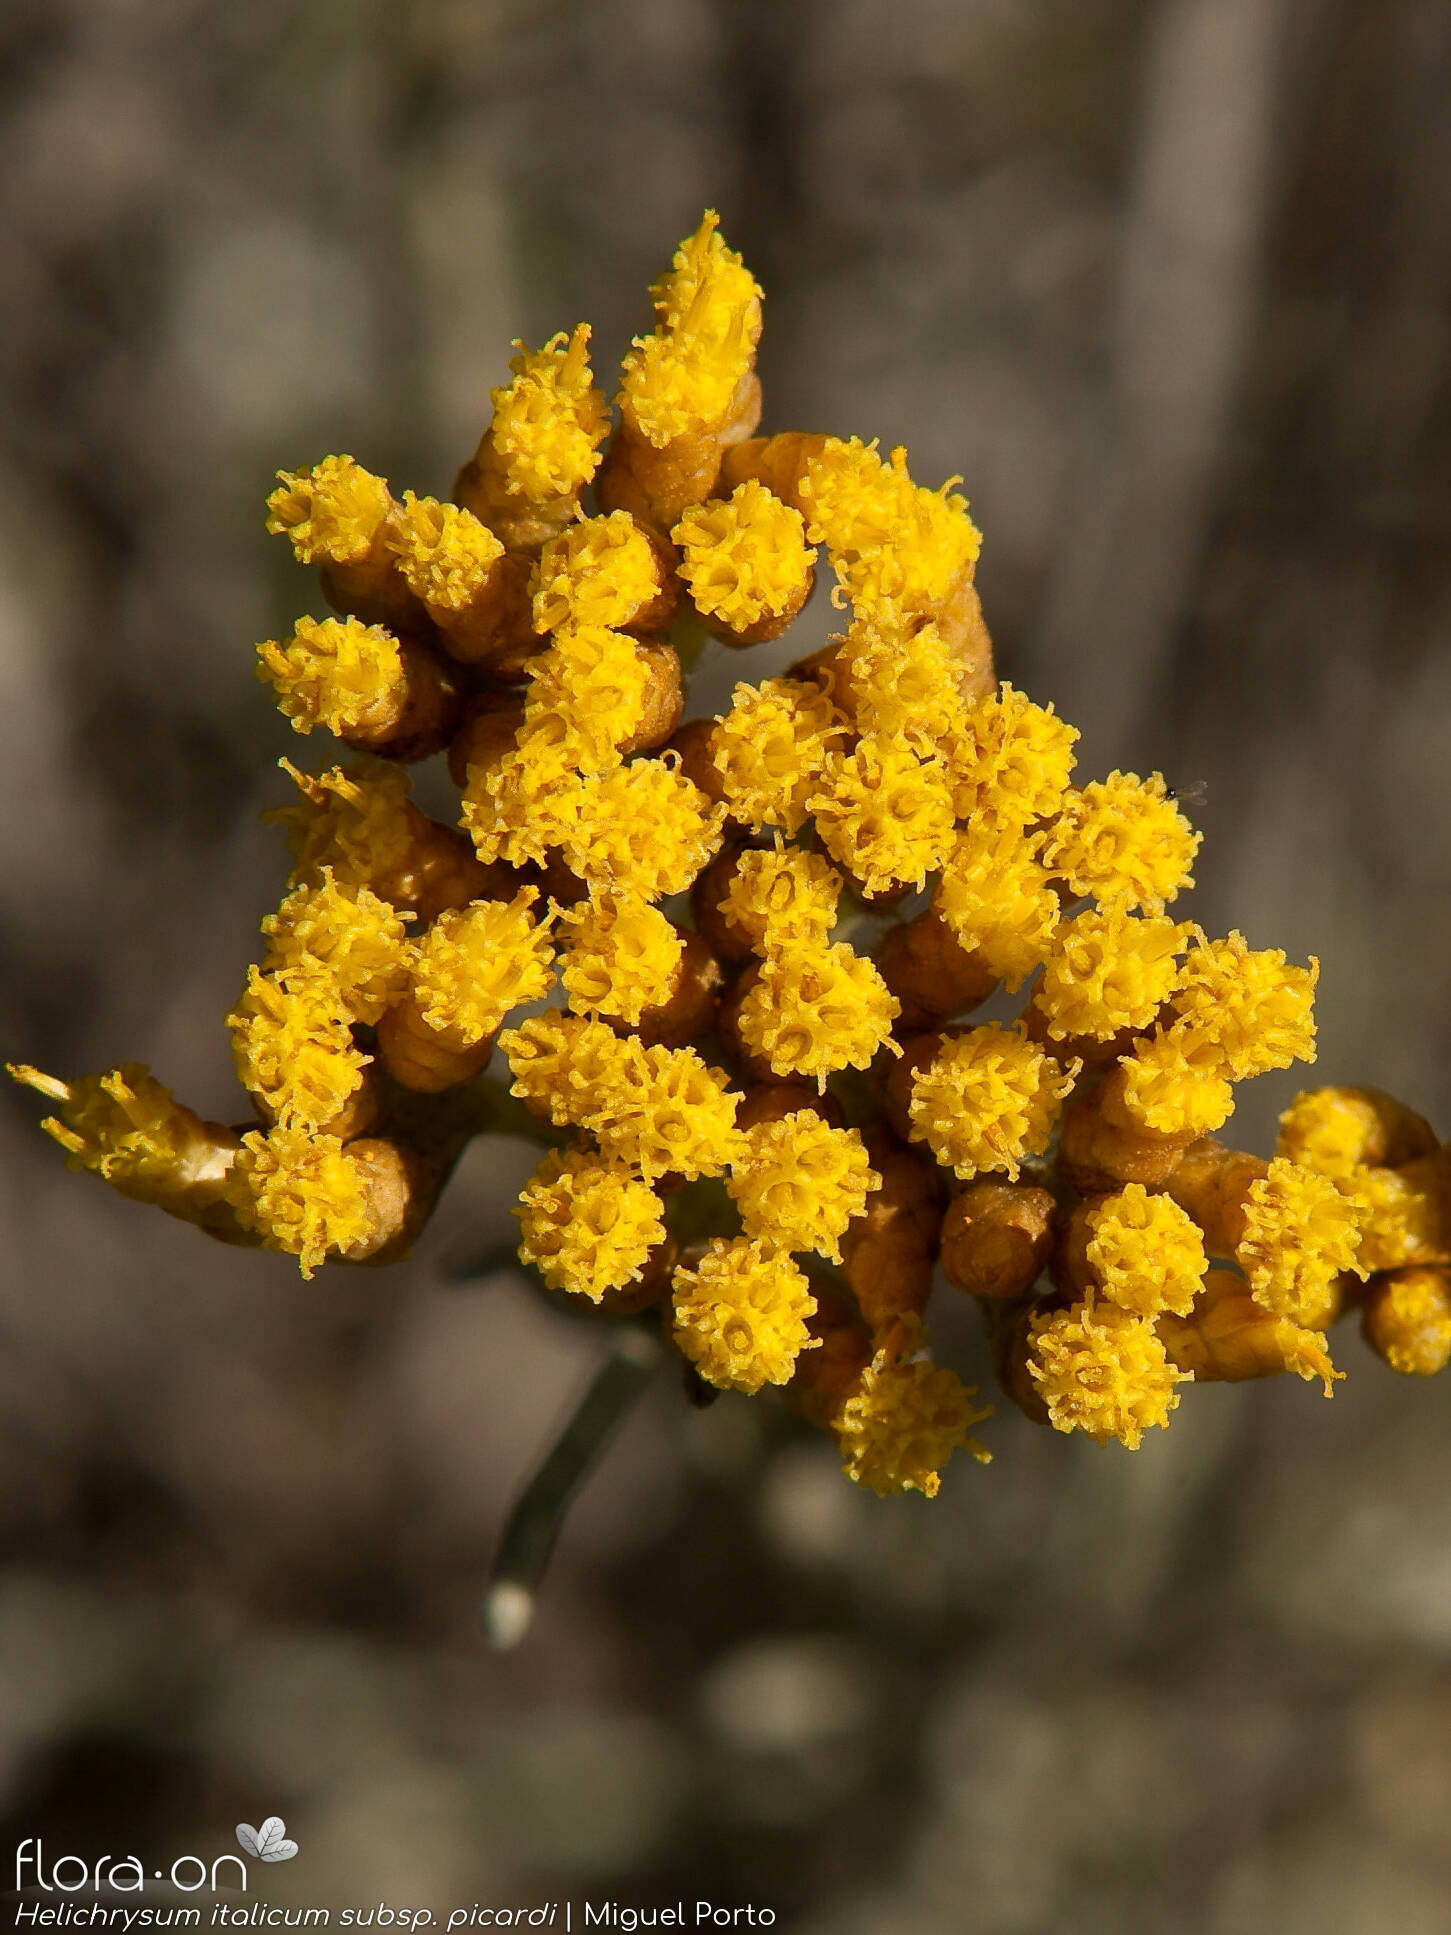 Helichrysum italicum picardi - Flor (geral) | Miguel Porto; CC BY-NC 4.0